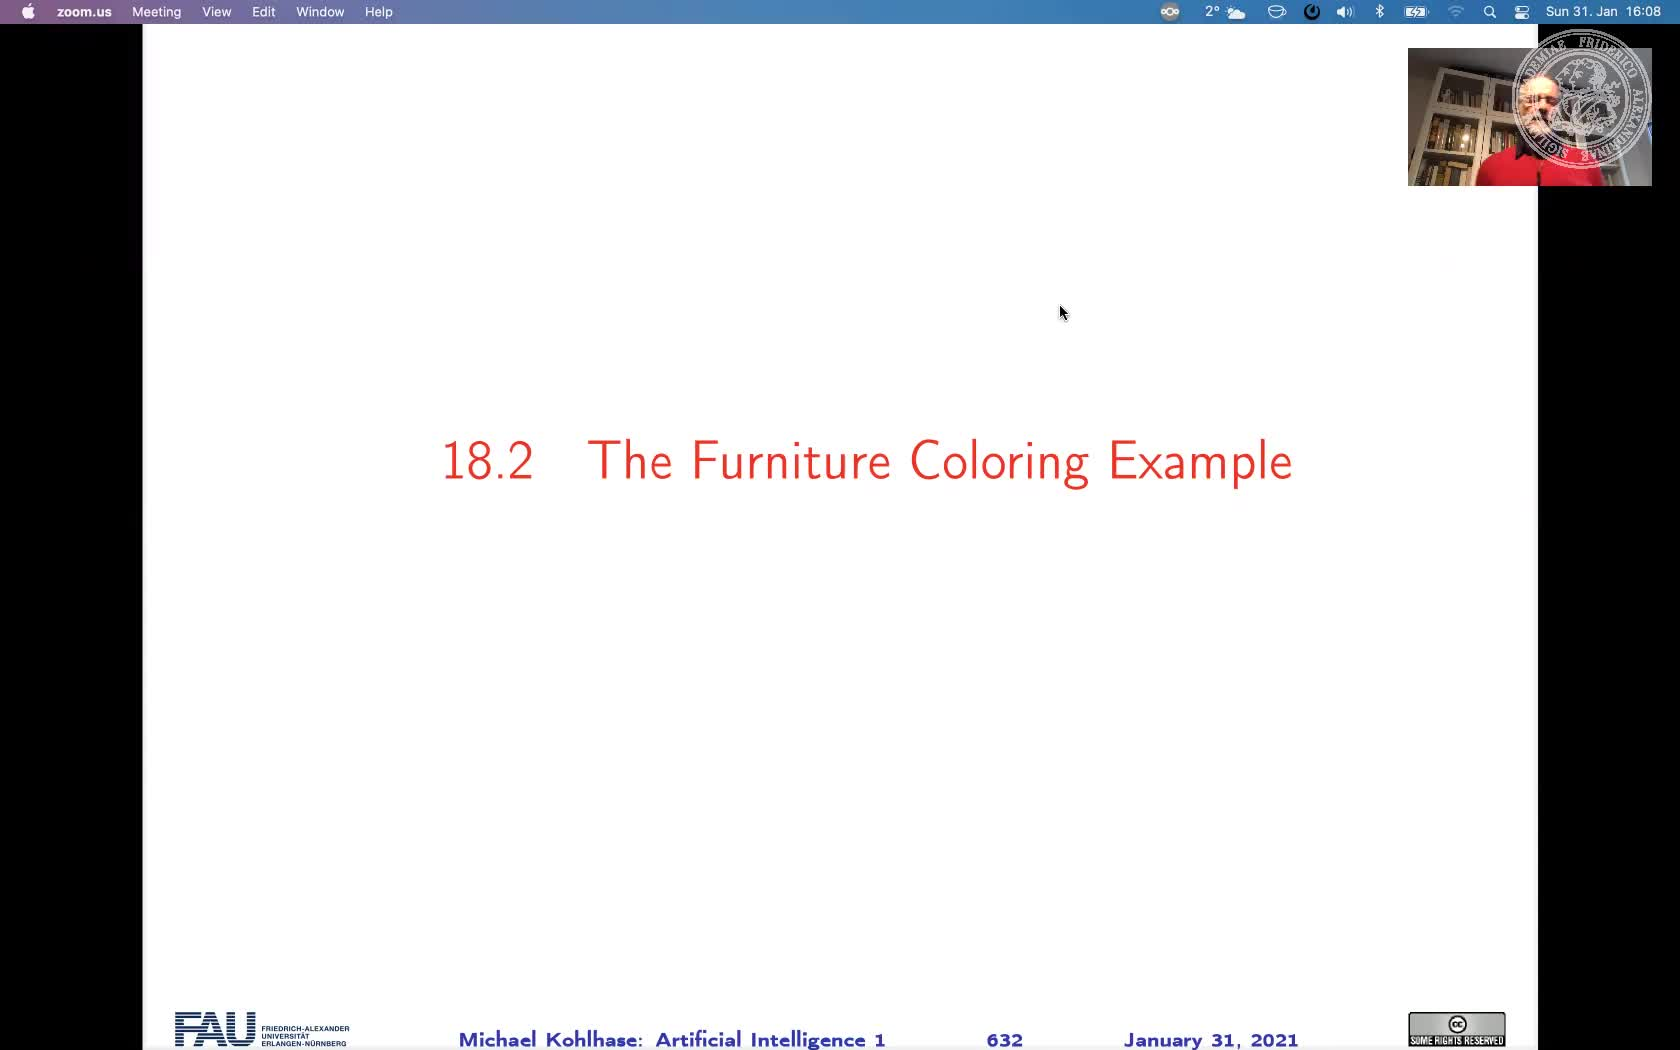 Furniture Coloring Example preview image